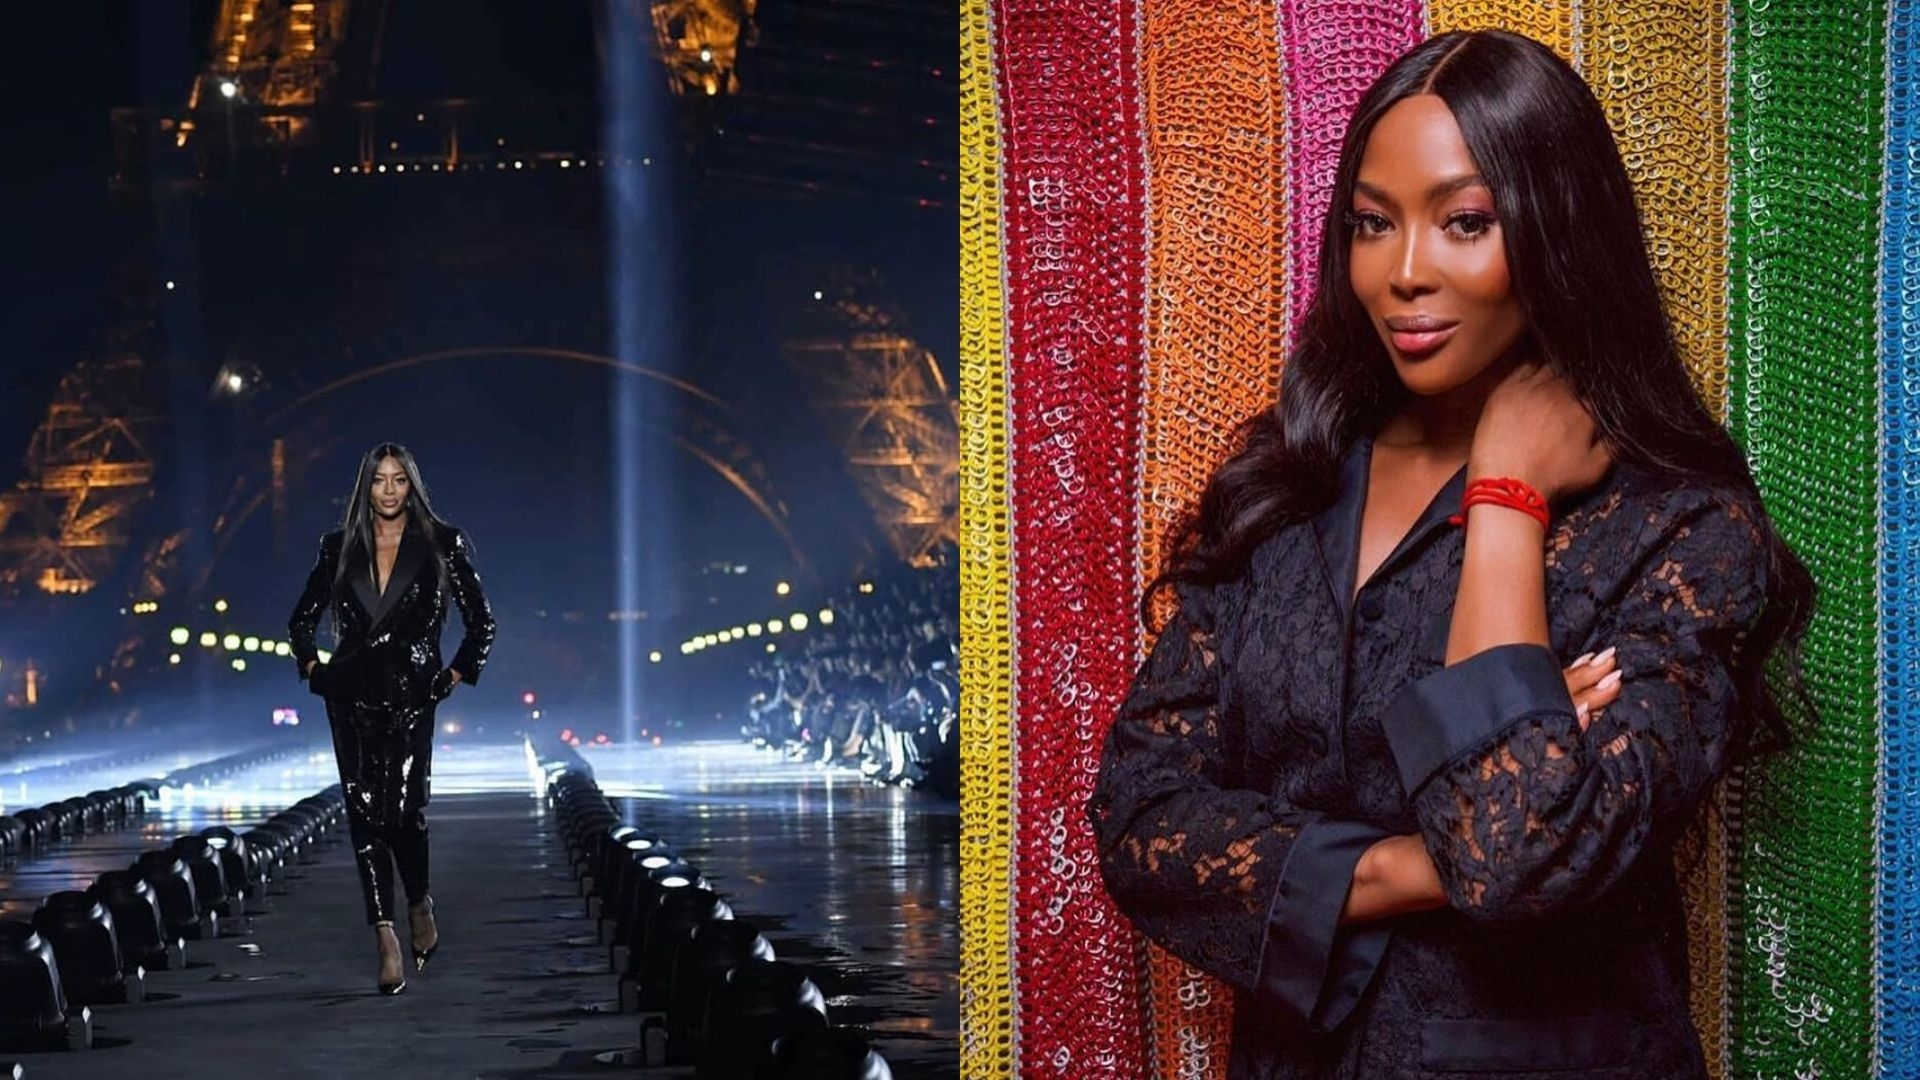 Naomi Campbell Discussed How It Felt To Be The Token Black Model On A Runway